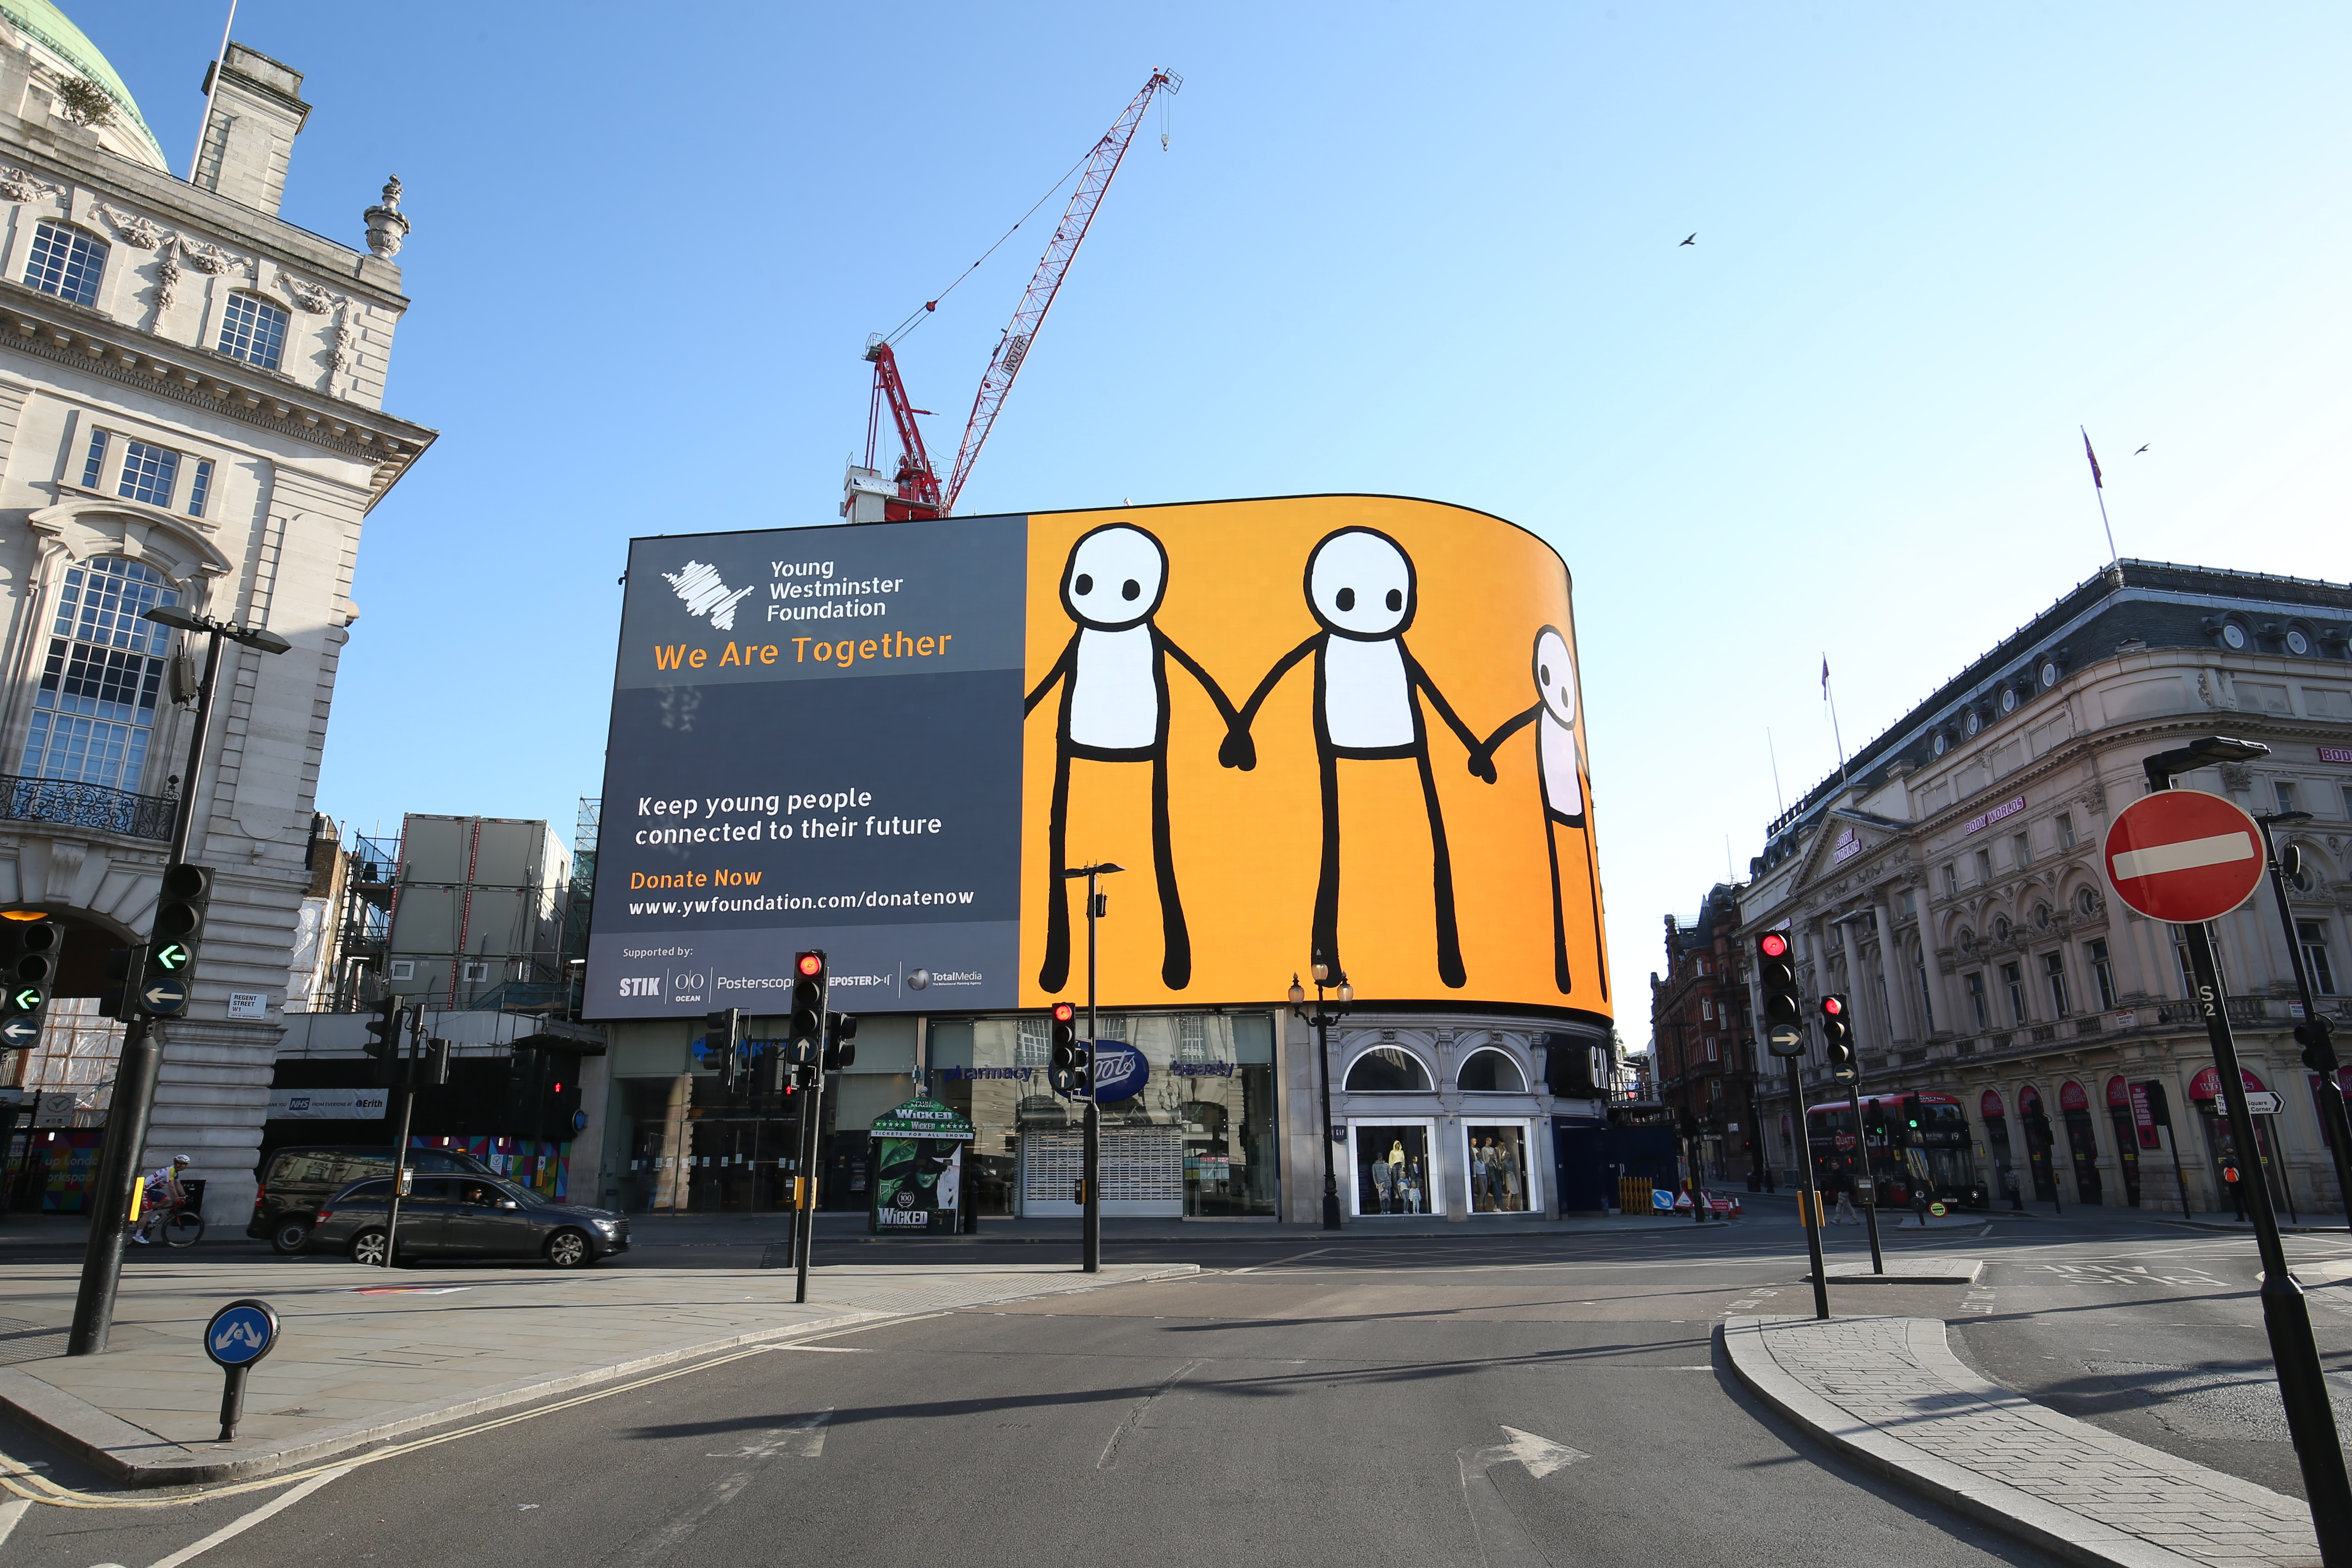 The Young Westminster Foundation (YWF), a charity that supports young people in the Westminster Borough, unveil their new and original digital artwork by the graffiti artist STIK on the Piccadilly Lights screen, at Piccadilly Circus, central London. (Photo by Jonathan Brady/PA Images via Getty Images)